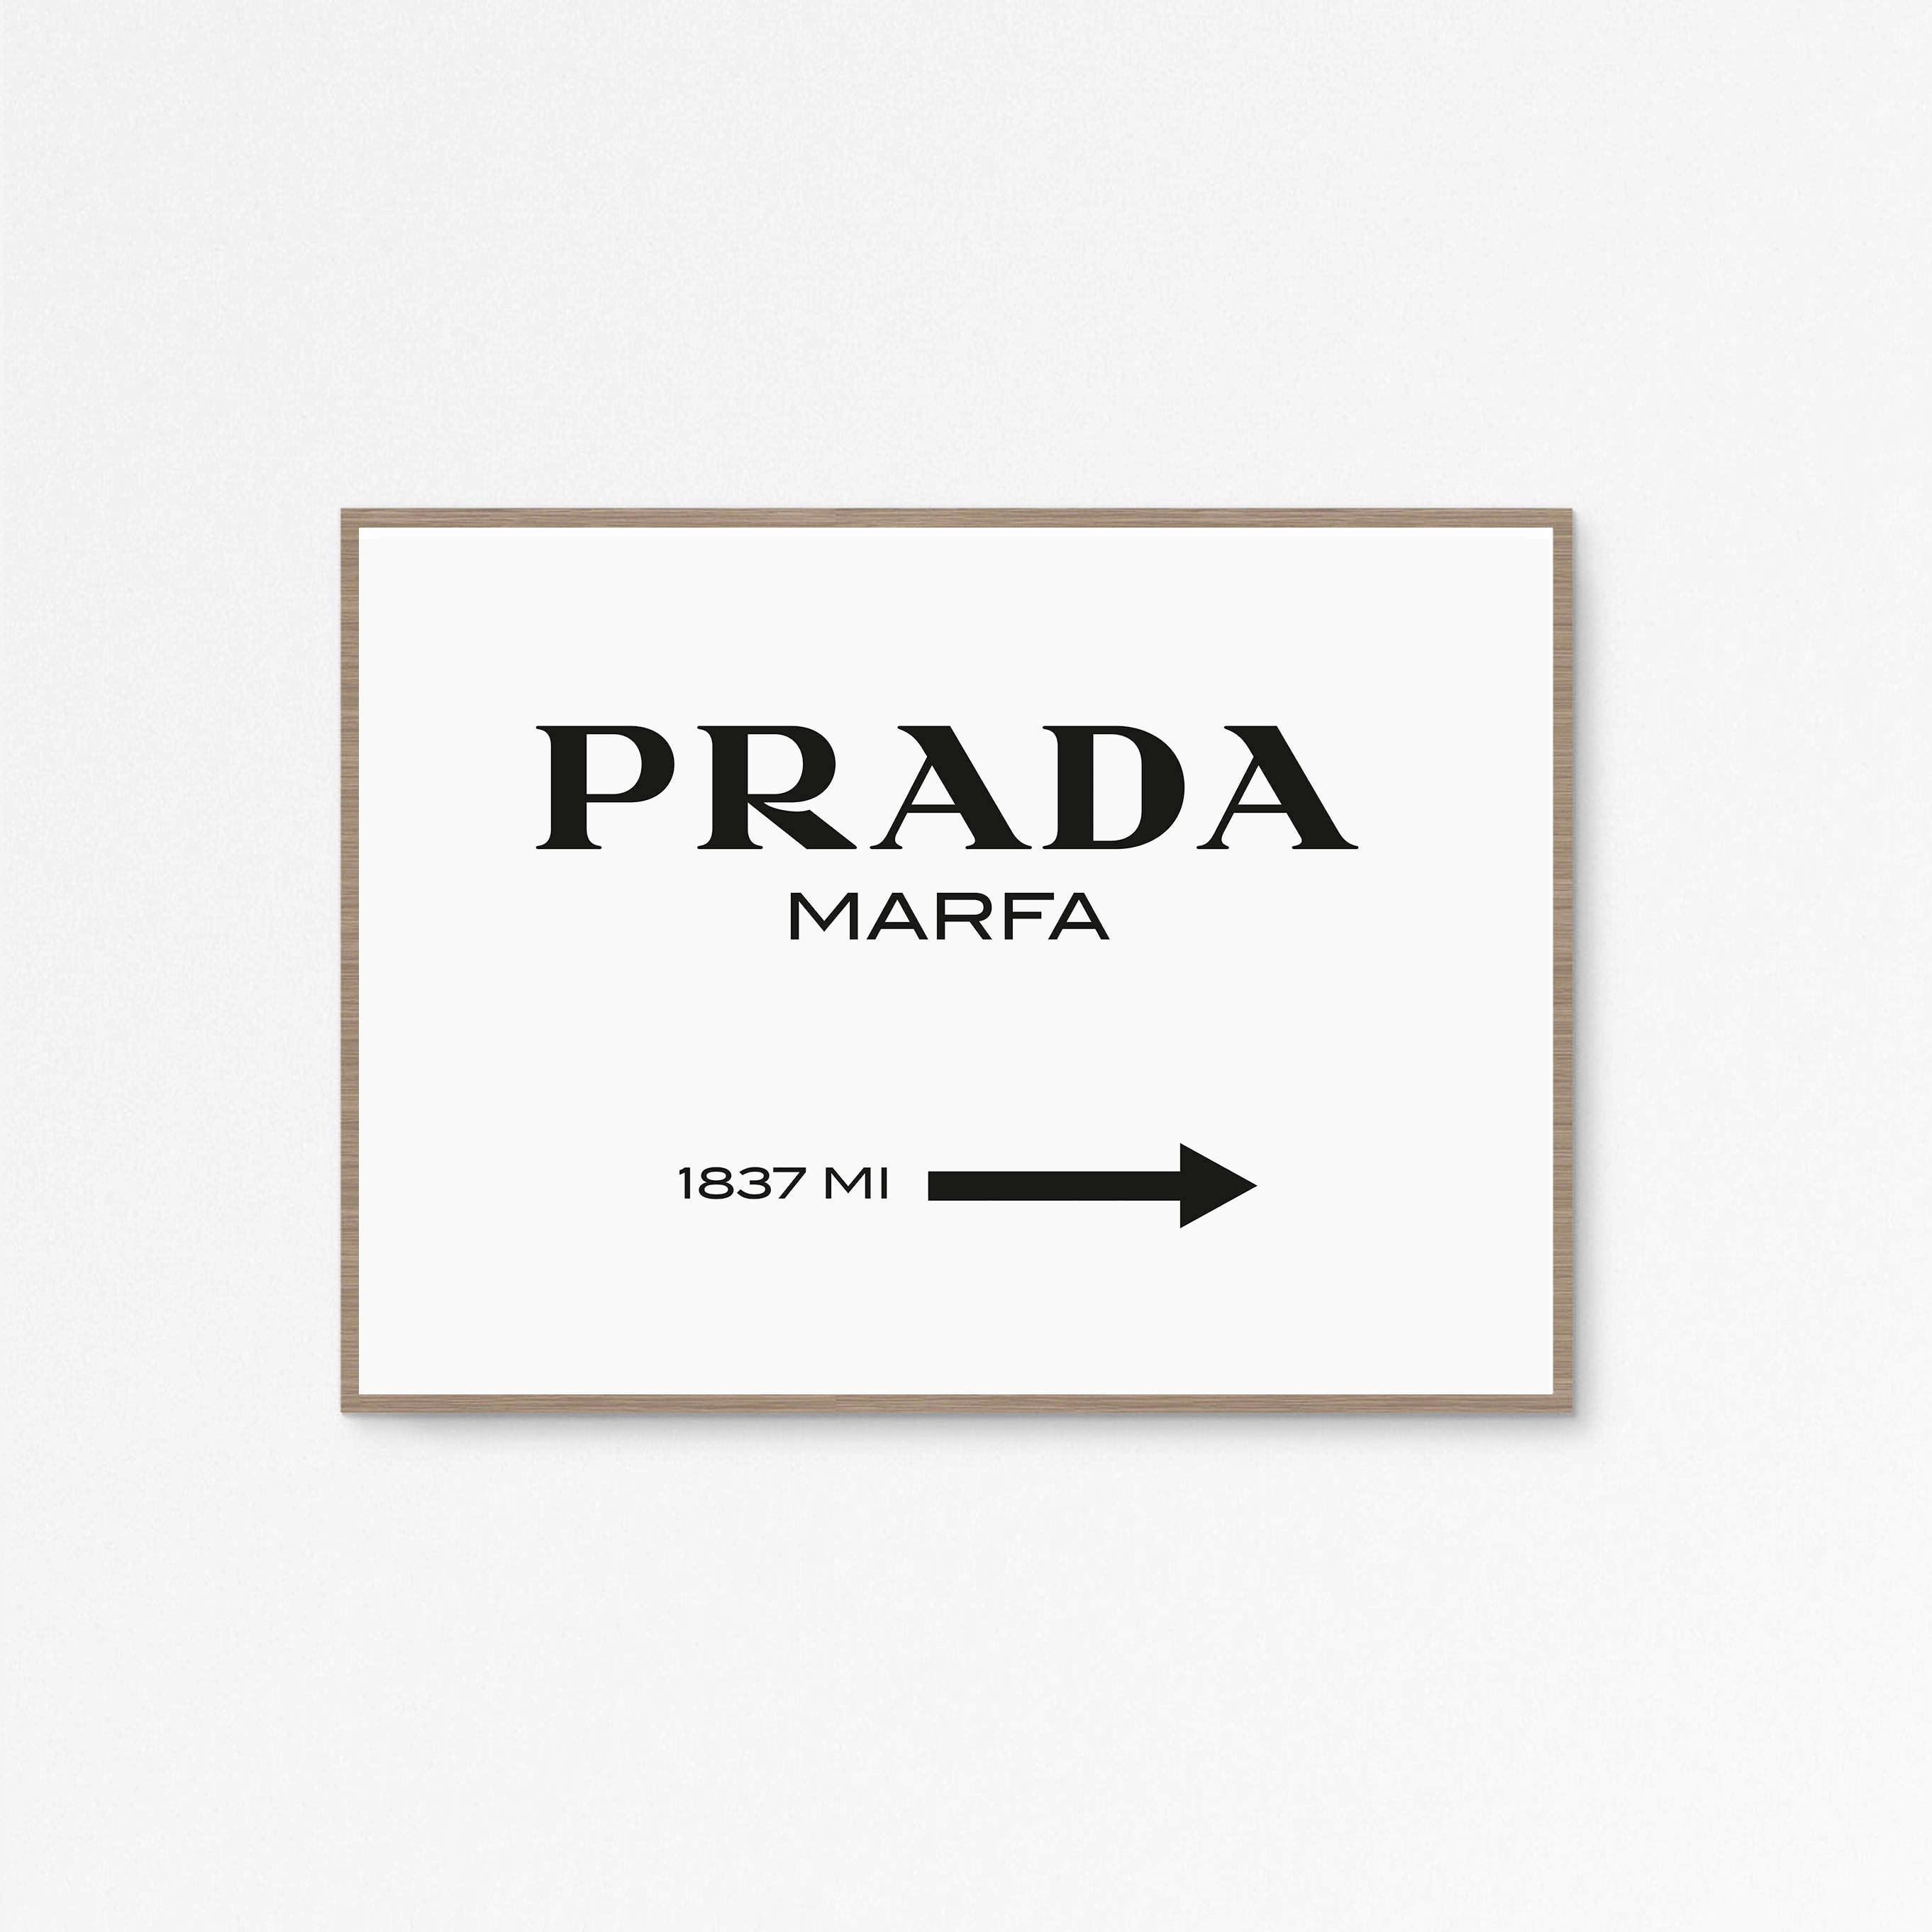 prada marfa print prada marfa art prada poster fashion art. Black Bedroom Furniture Sets. Home Design Ideas